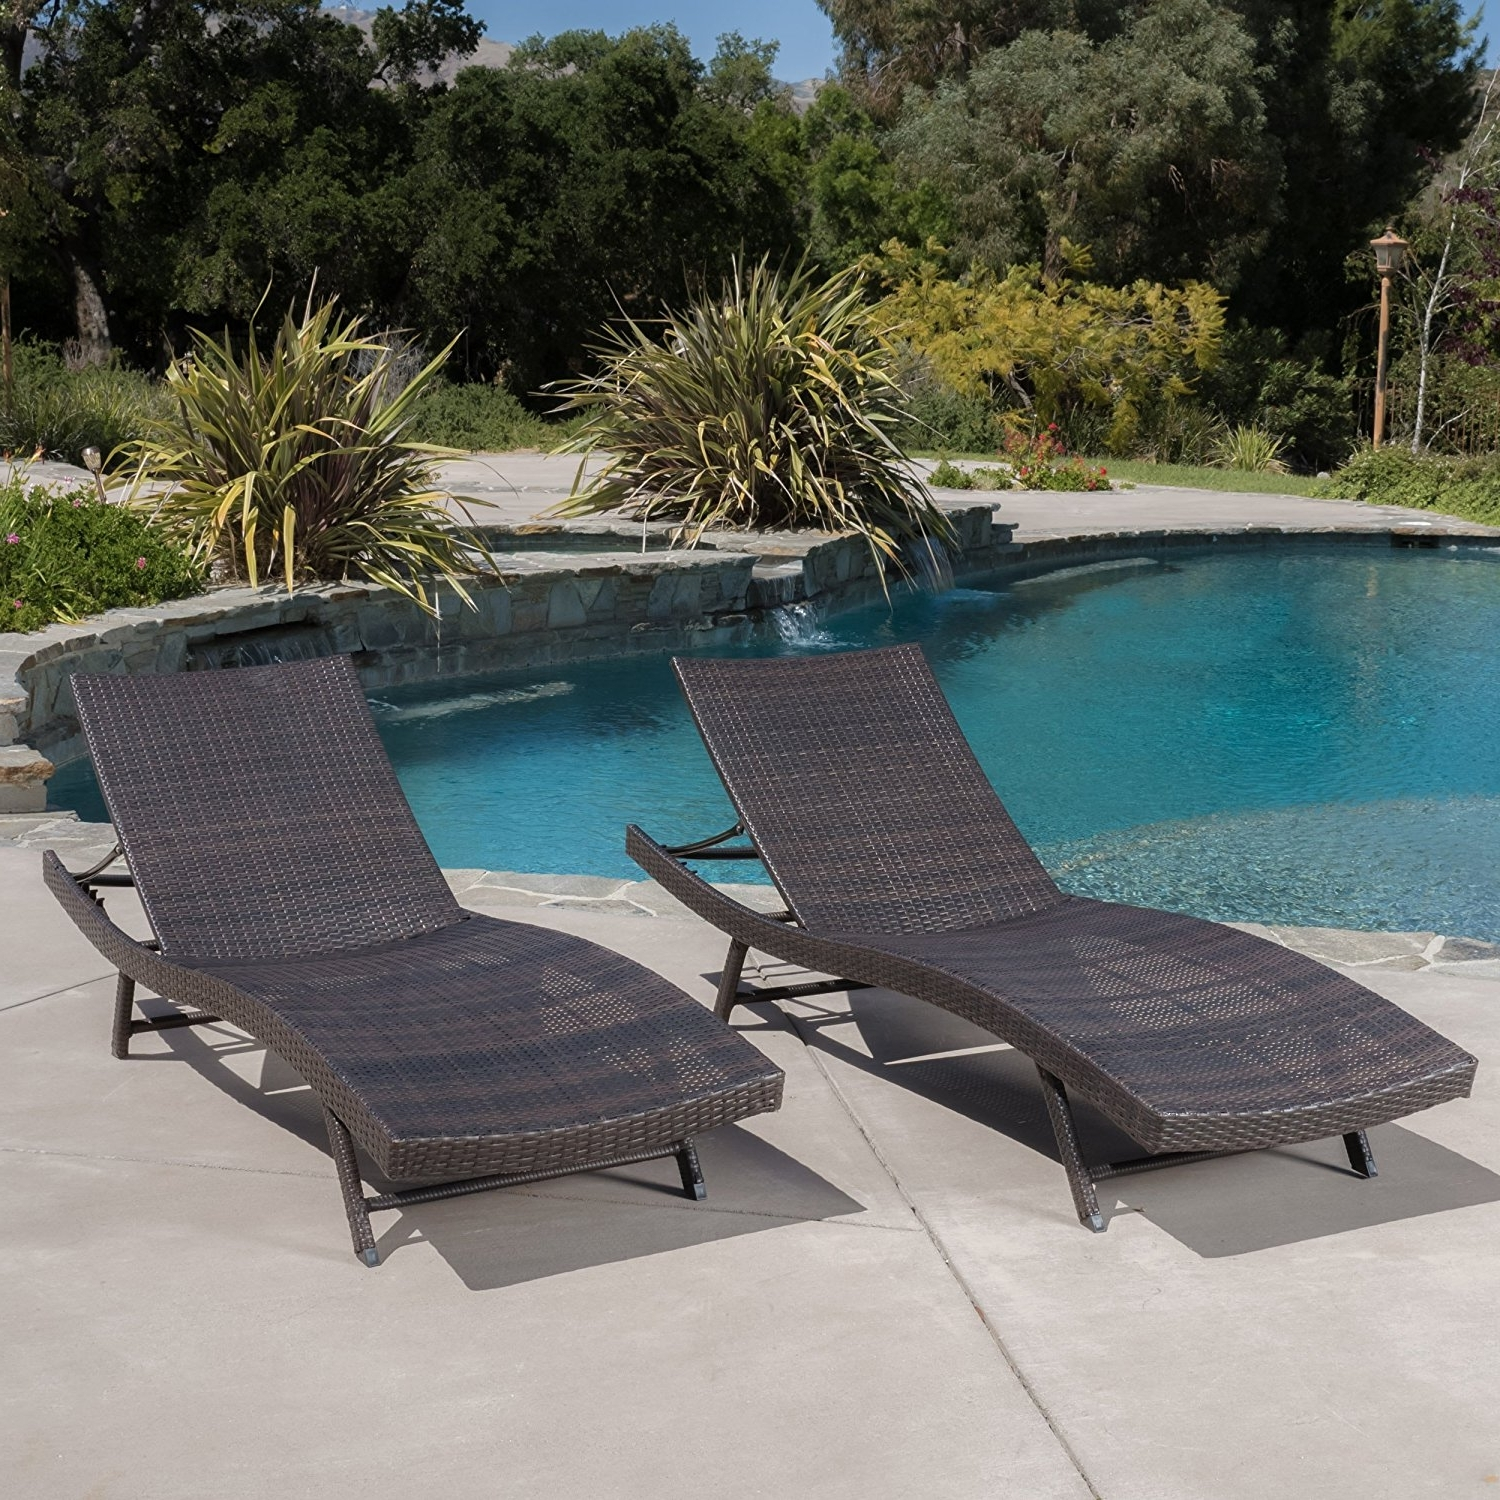 Preferred Eliana Outdoor Brown Wicker Chaise Lounge Chairs Throughout Amazon: Eliana Outdoor Brown Wicker Chaise Lounge Chairs (Set (View 14 of 15)